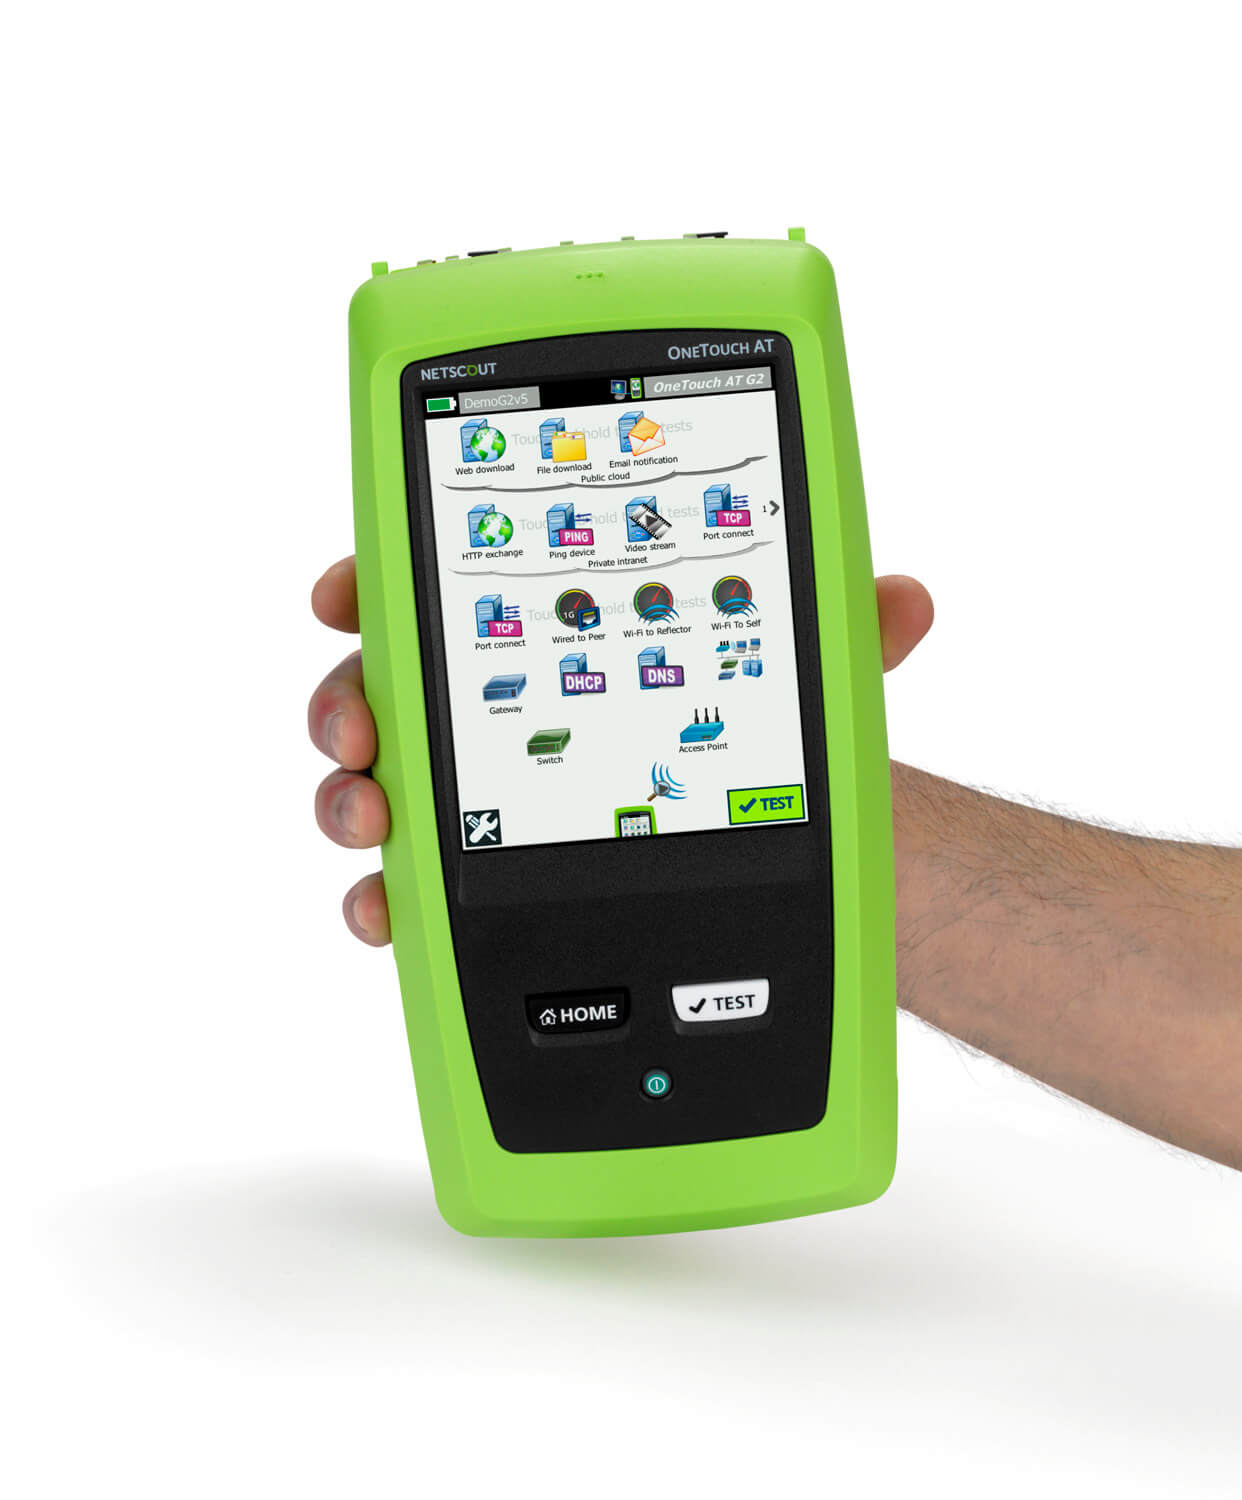 Netscout Onetouch AT G2 in hand